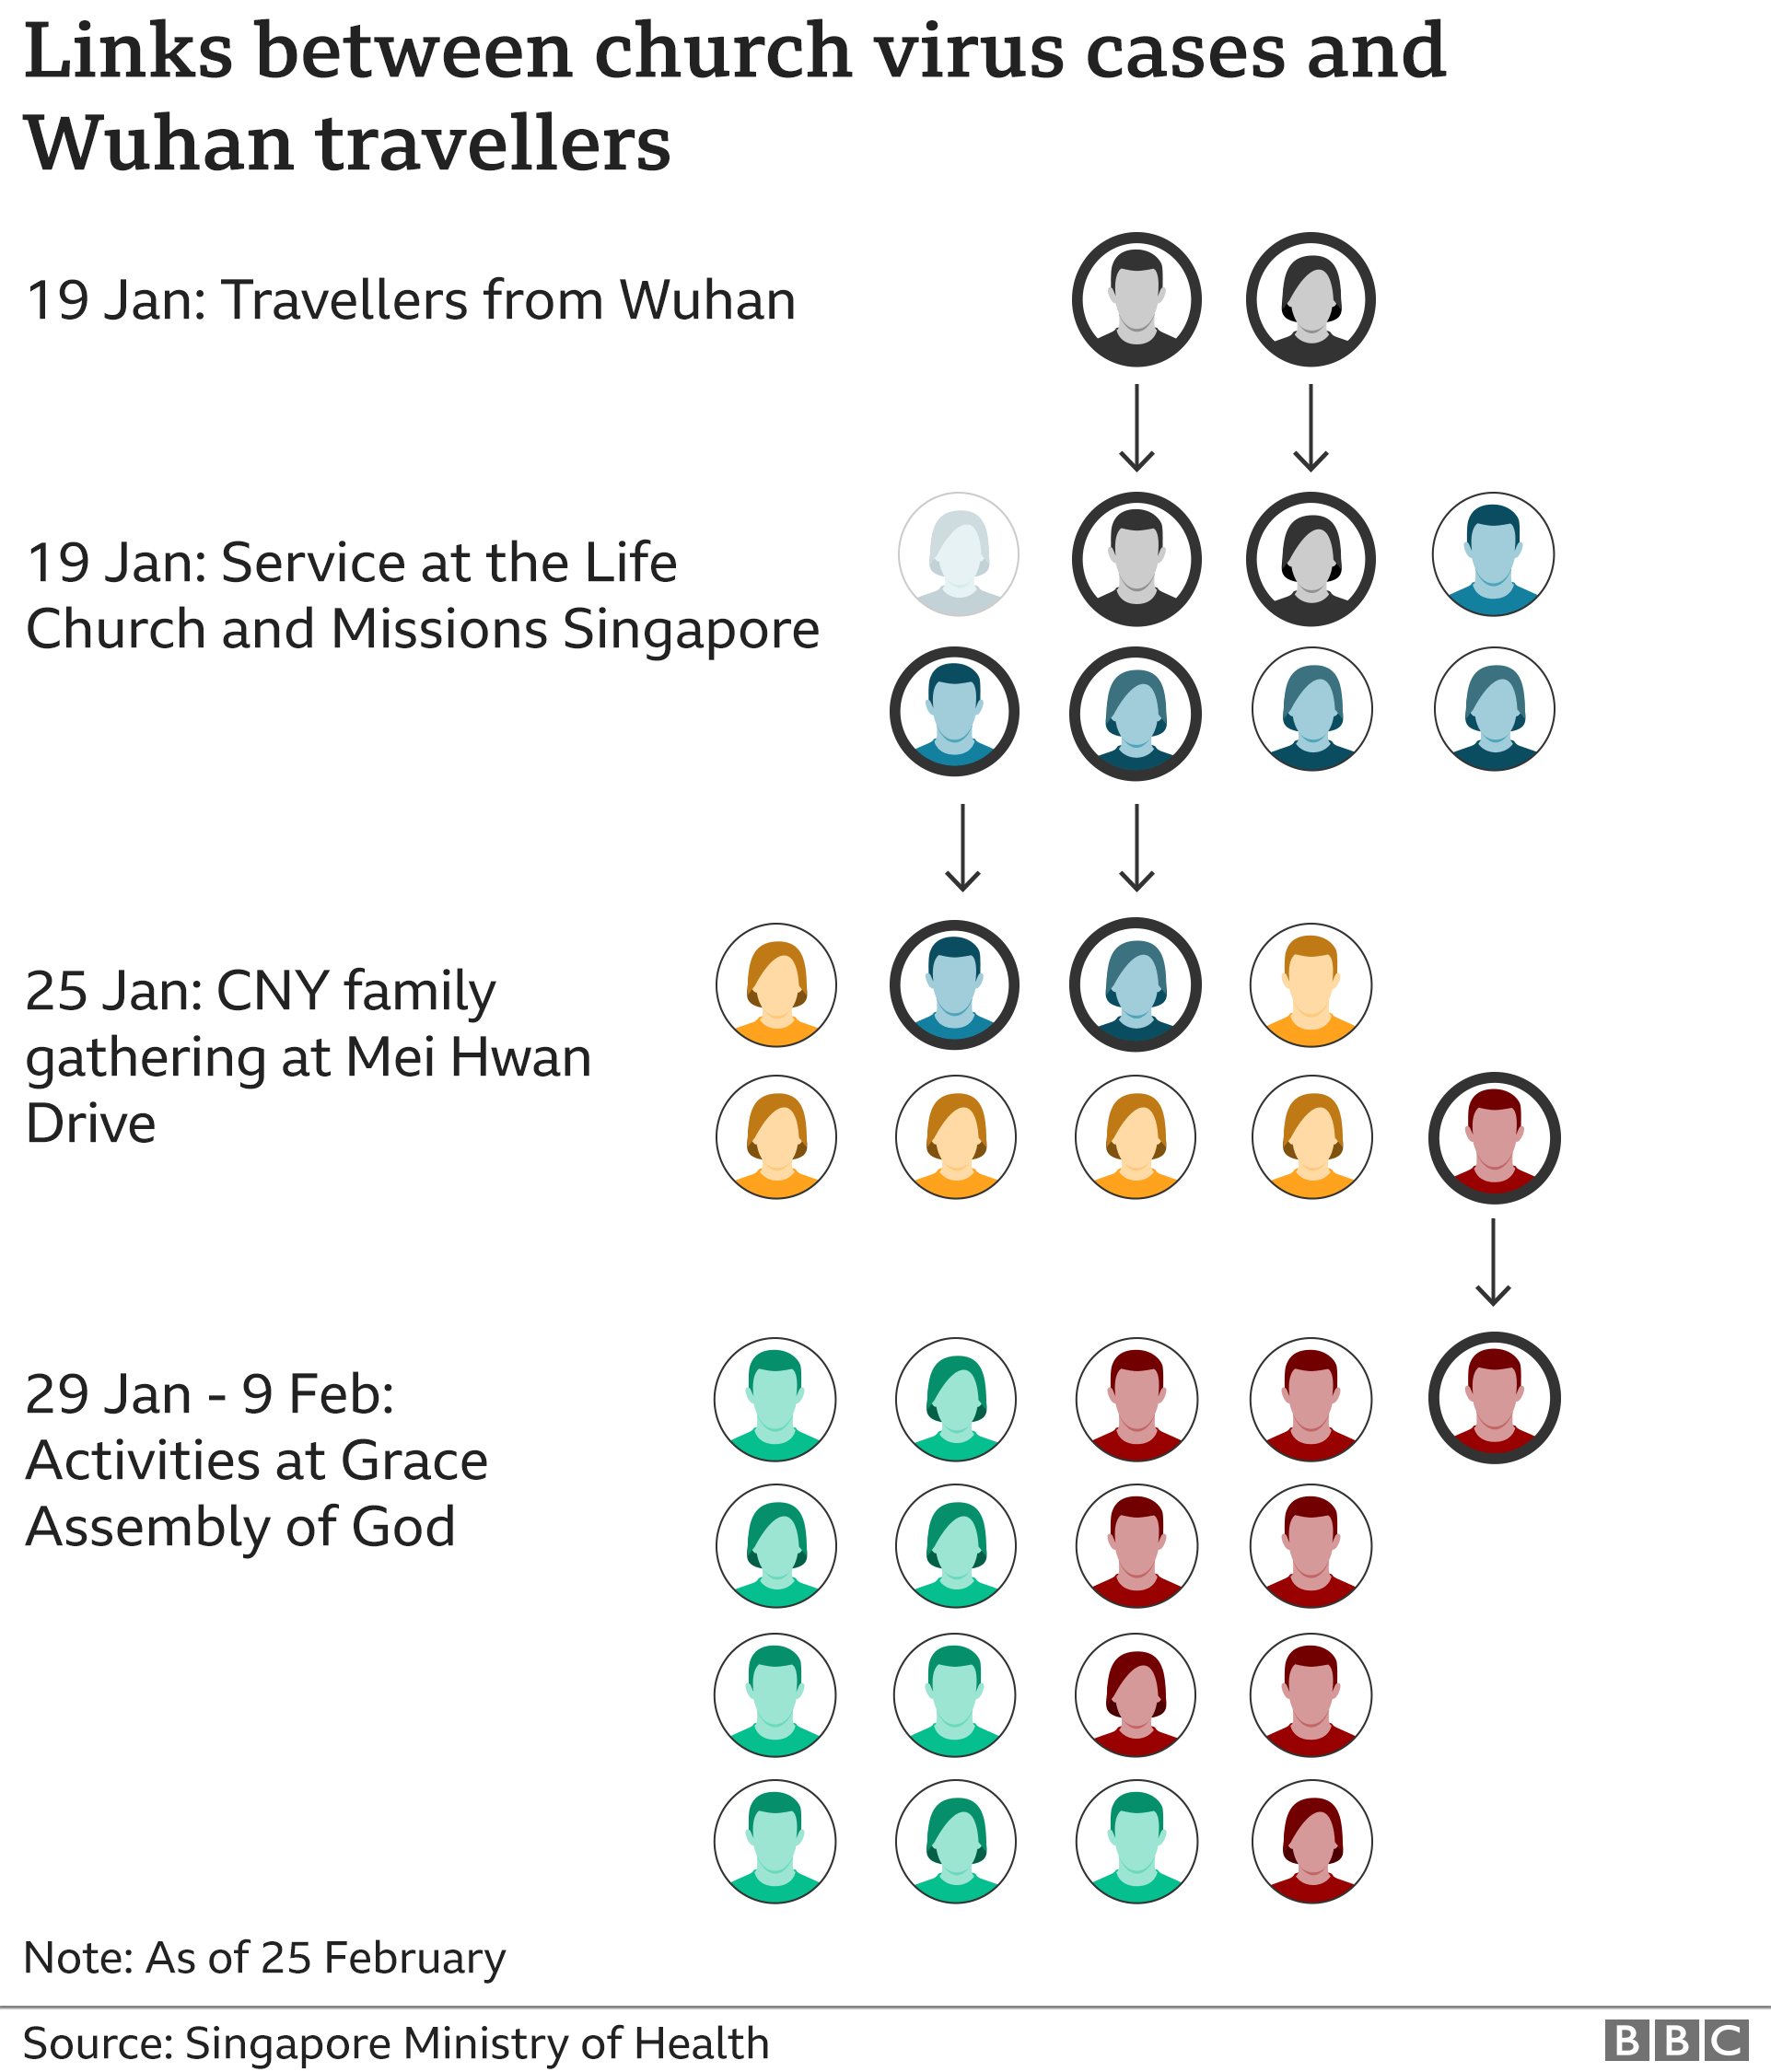 Graphic showing links between church virus cases and Wuhan travellers